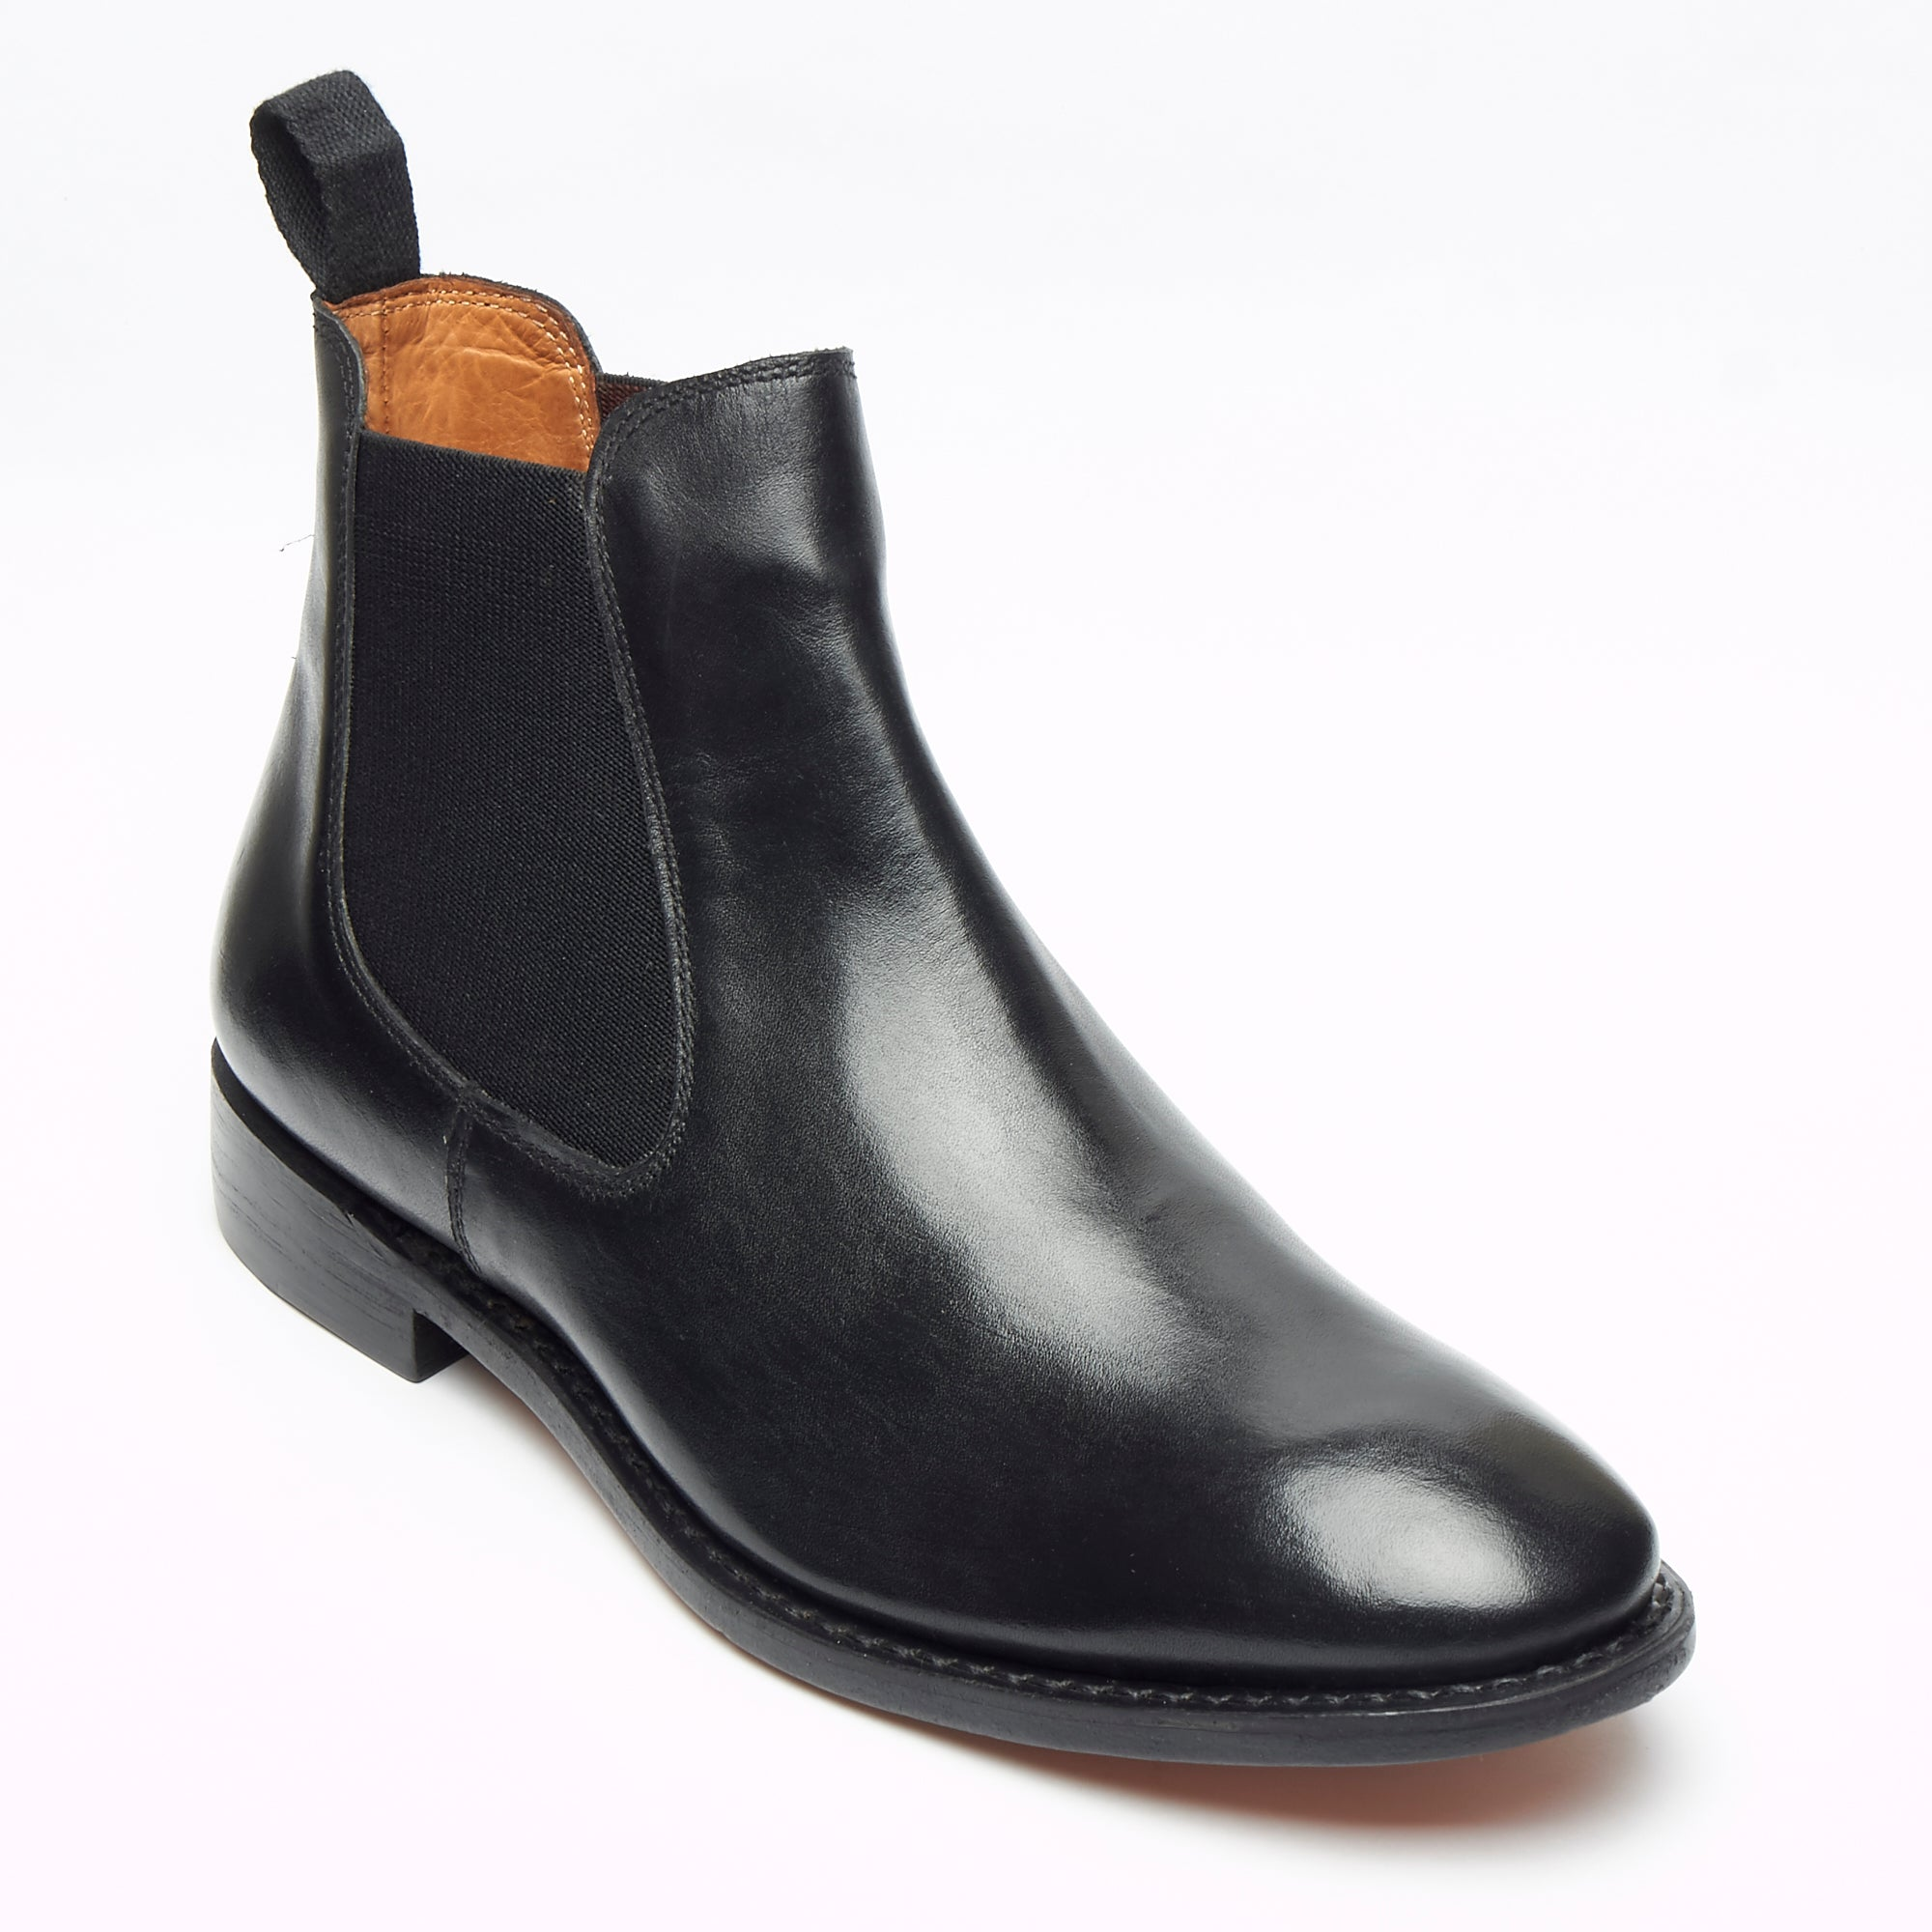 Mens Goodyear Welted Leather Chelsea Boots - 27817 Black